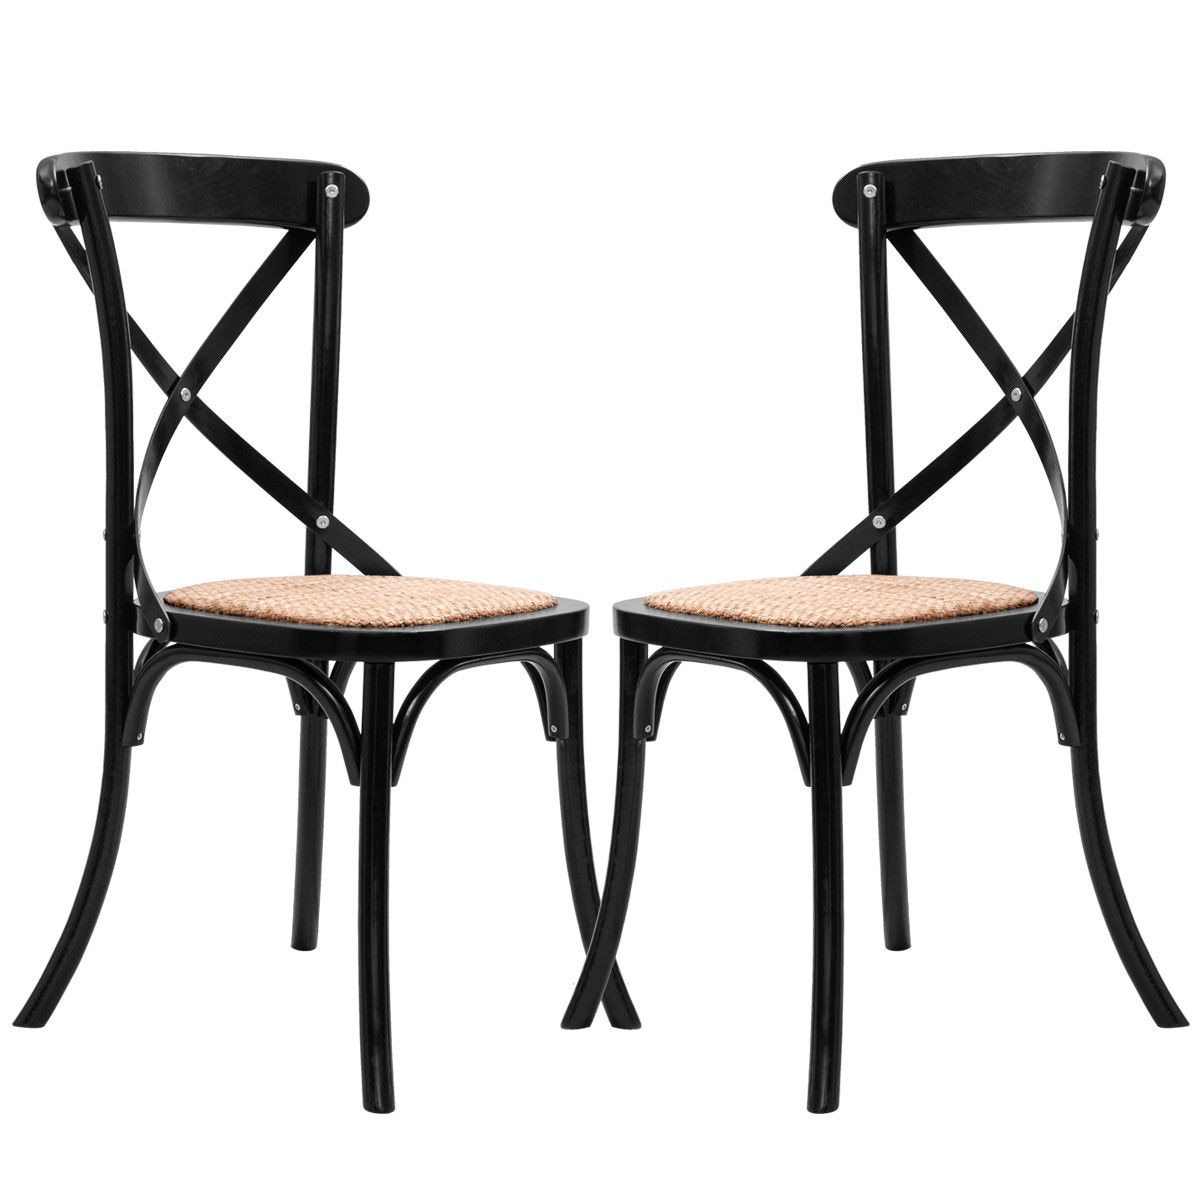 2 Piece Solid Wood & Rattan Cross Back Dining Chair